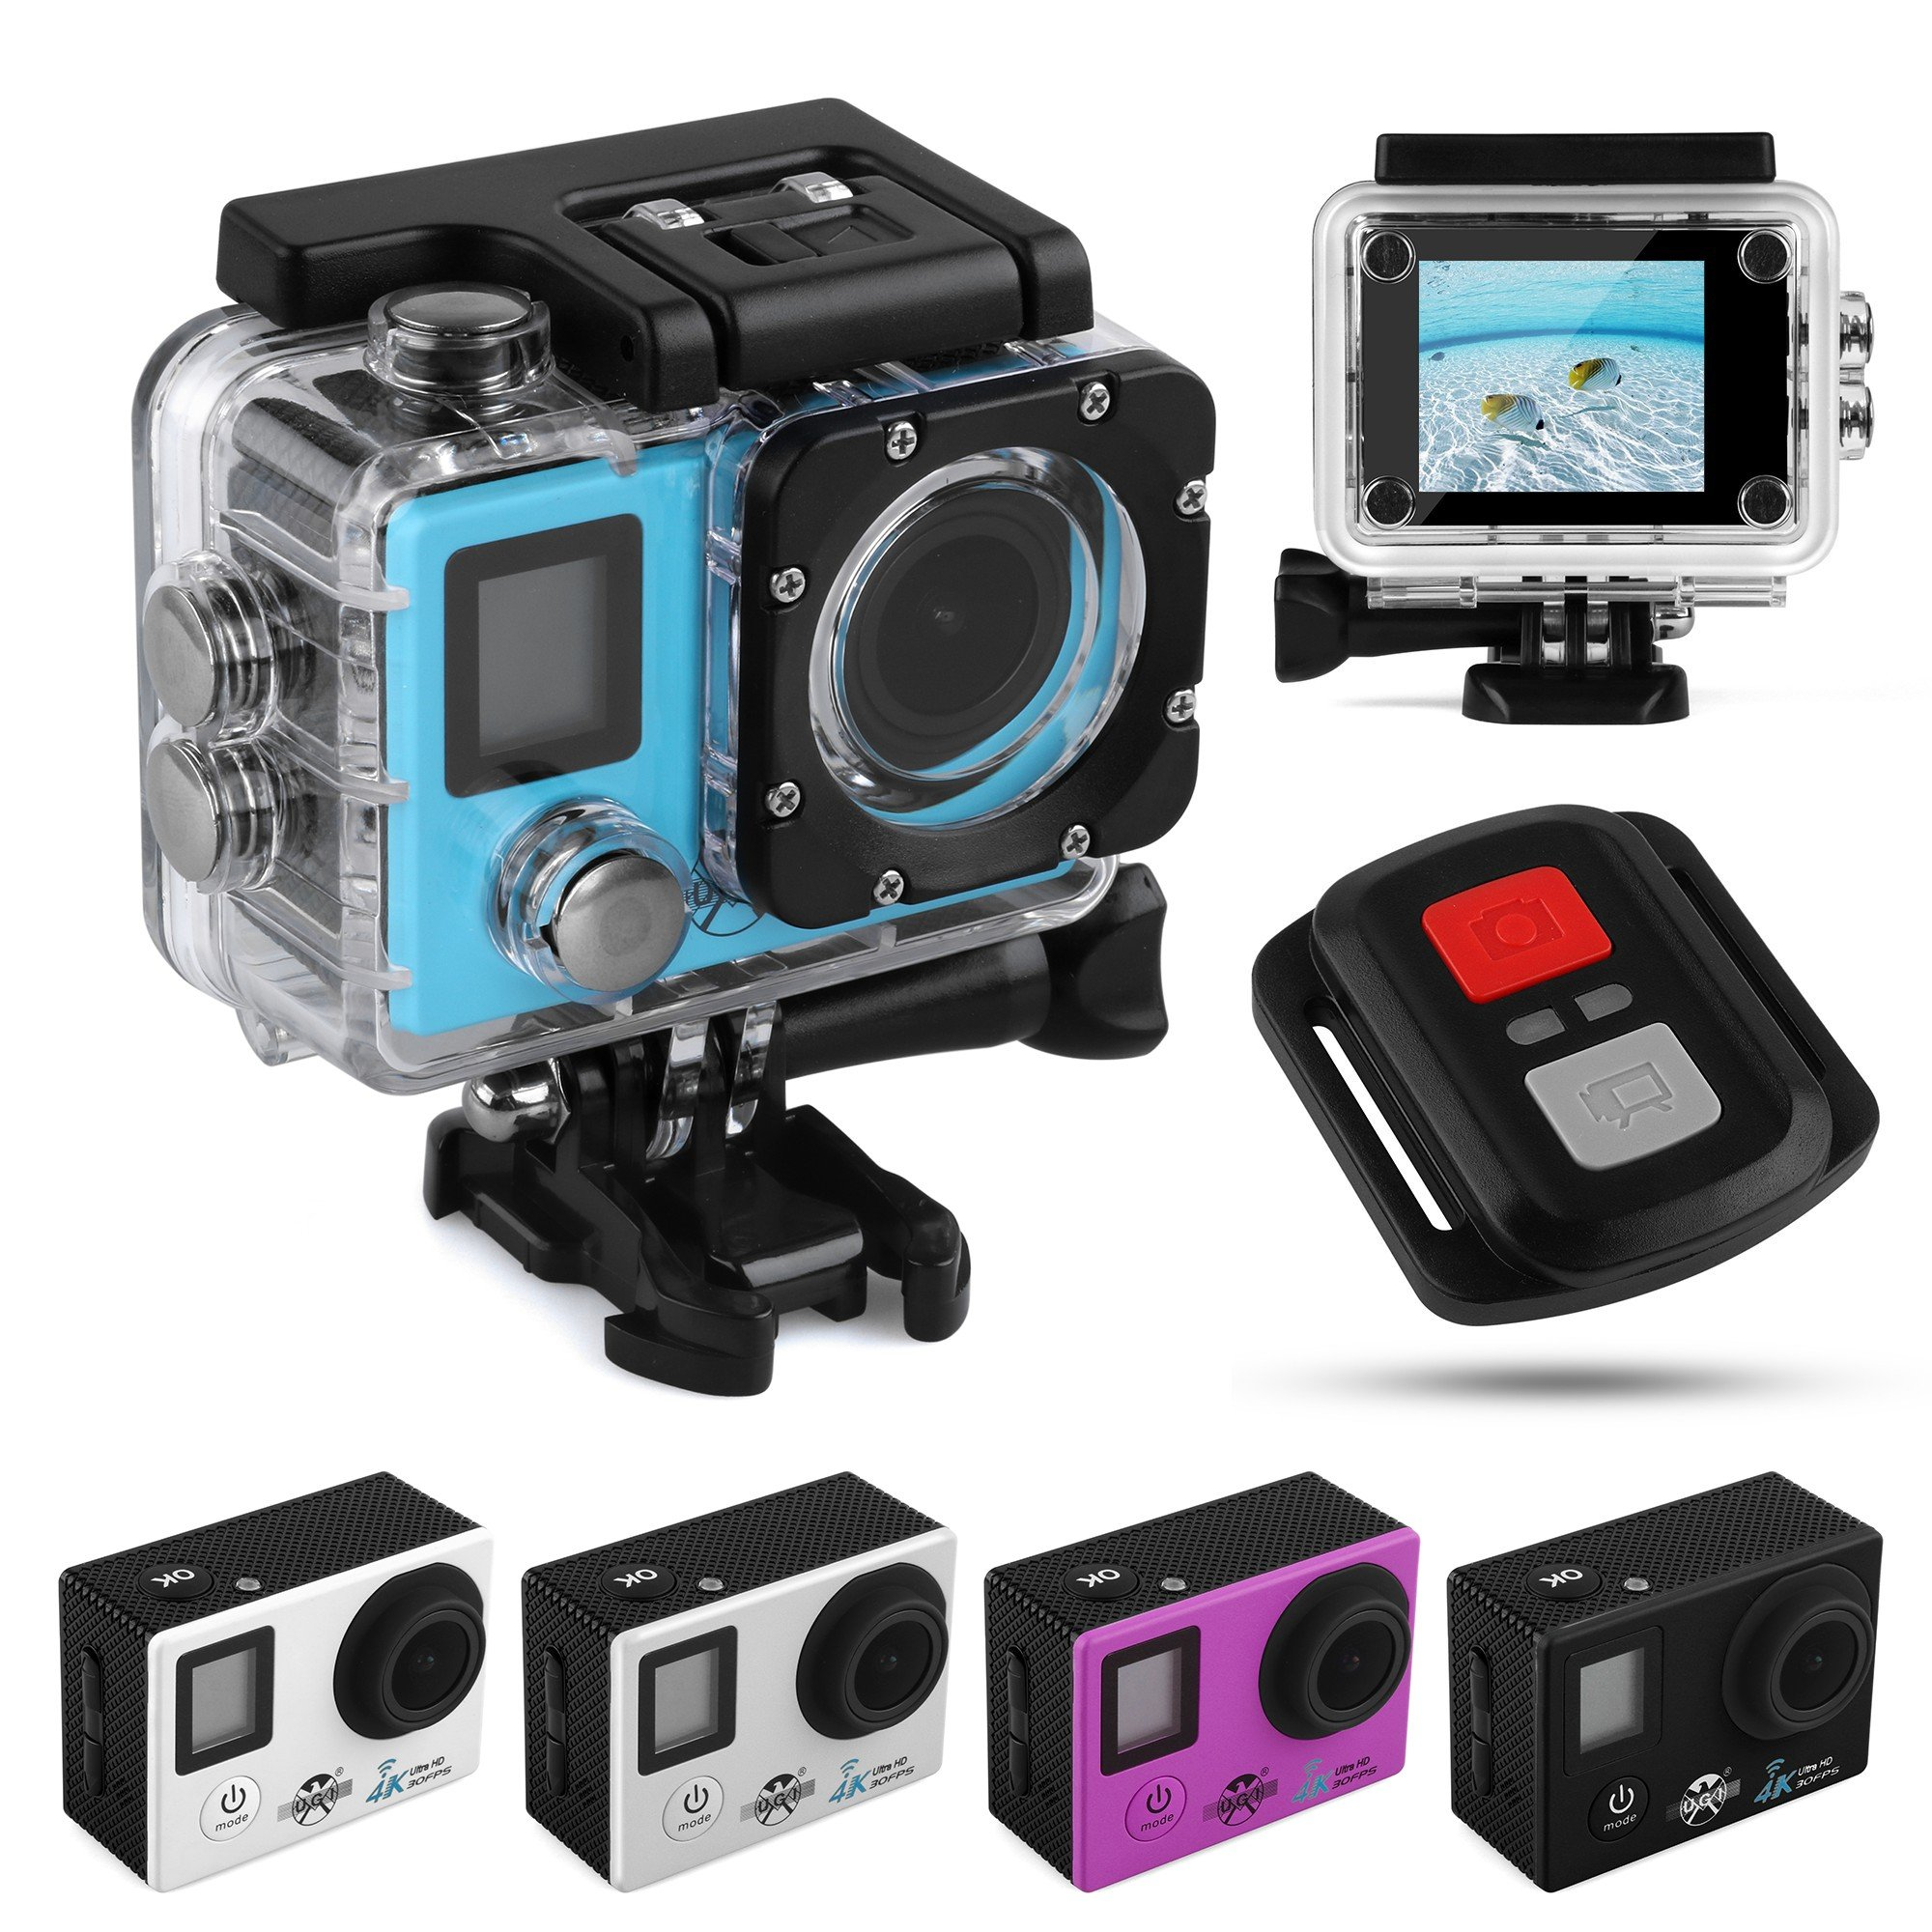 UGI Action Camera 1080P 4K Ultra HD Sports Camera Waterproof Wifi DVR Video Camcorder with Accessories for Kids,Snorkeling,Motorcycle,Bike,Helmet,Car,Ski and Water Sports